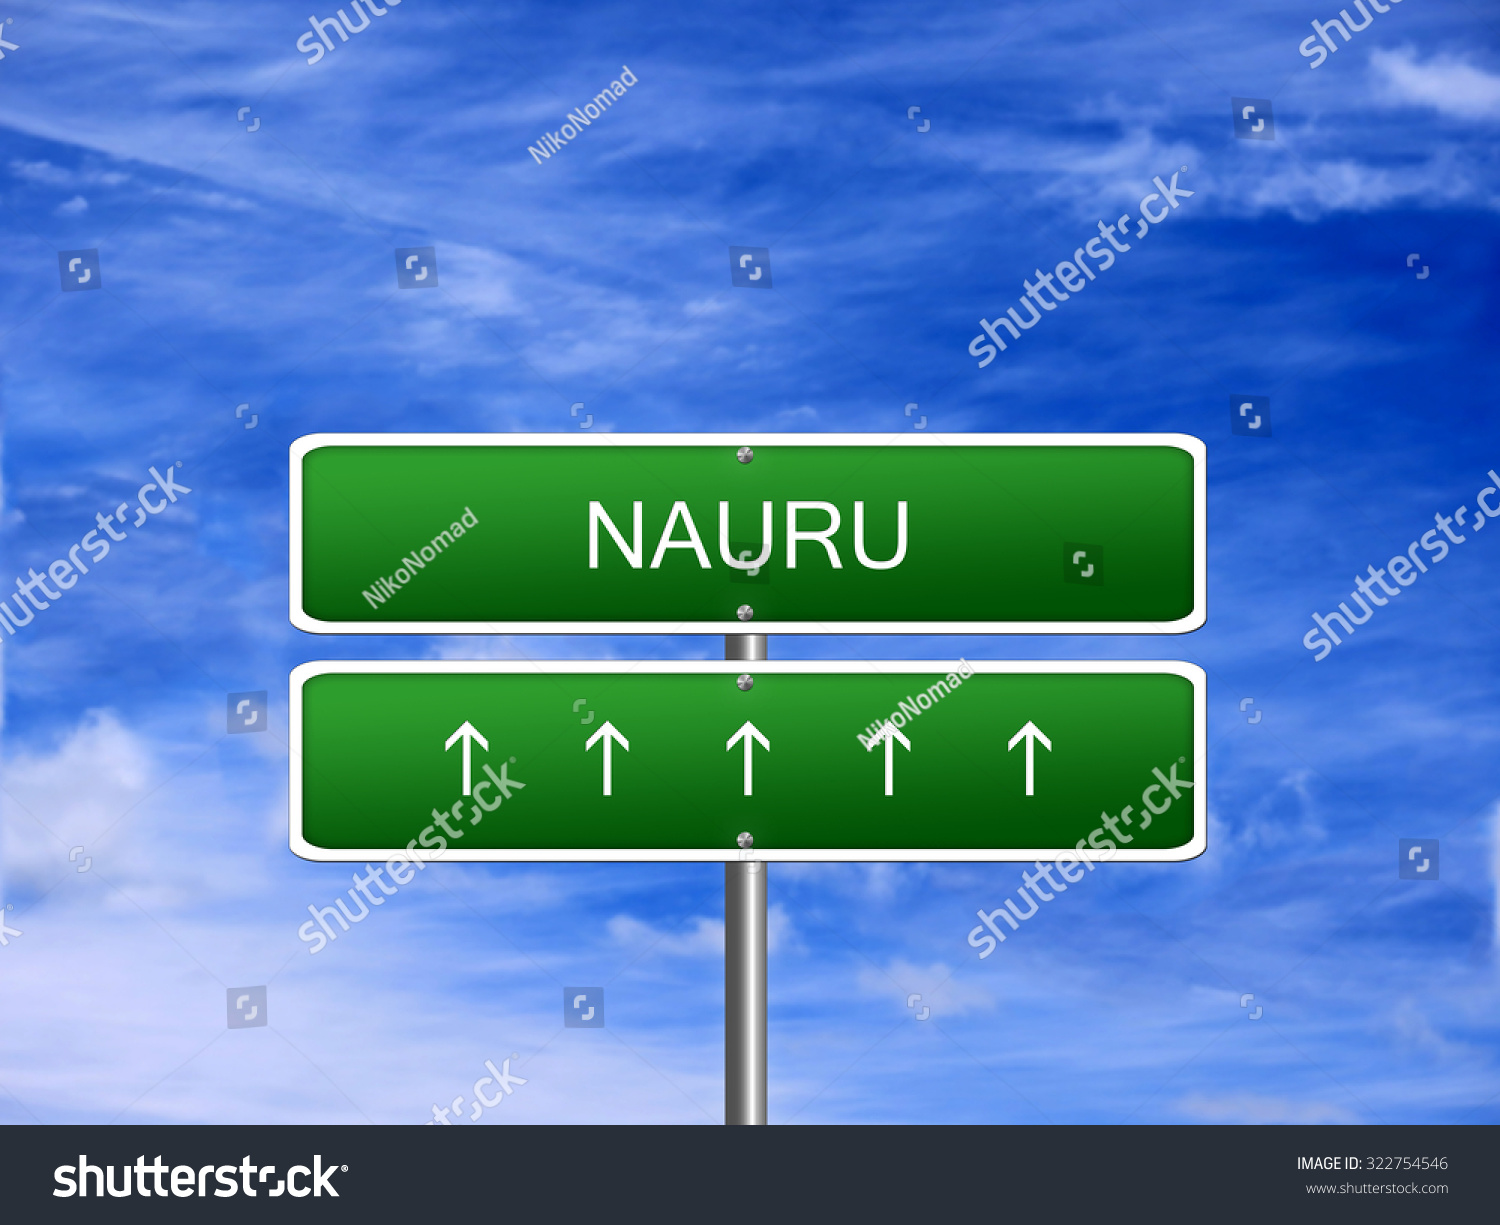 Nauru Welcome Travel Landmark Landscape Map Stock Illustration